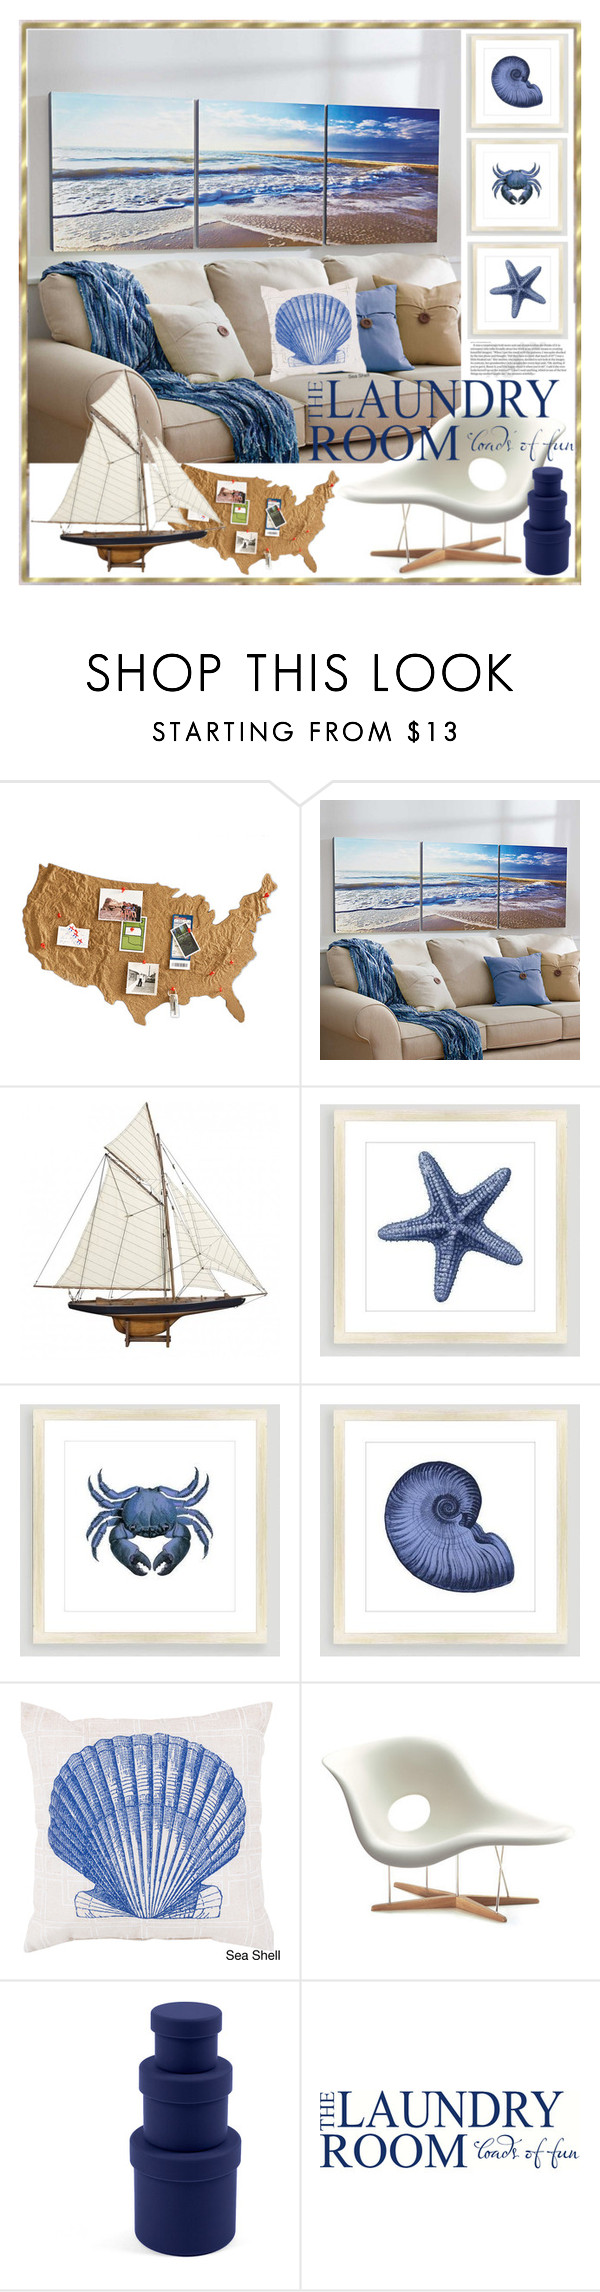 """""""The Laundry Room"""" by yours-styling-best-friend ❤ liked on Polyvore featuring interior, interiors, interior design, home, home decor, interior decorating, Improvements, Authentic Models, Cost Plus World Market and Vitra"""